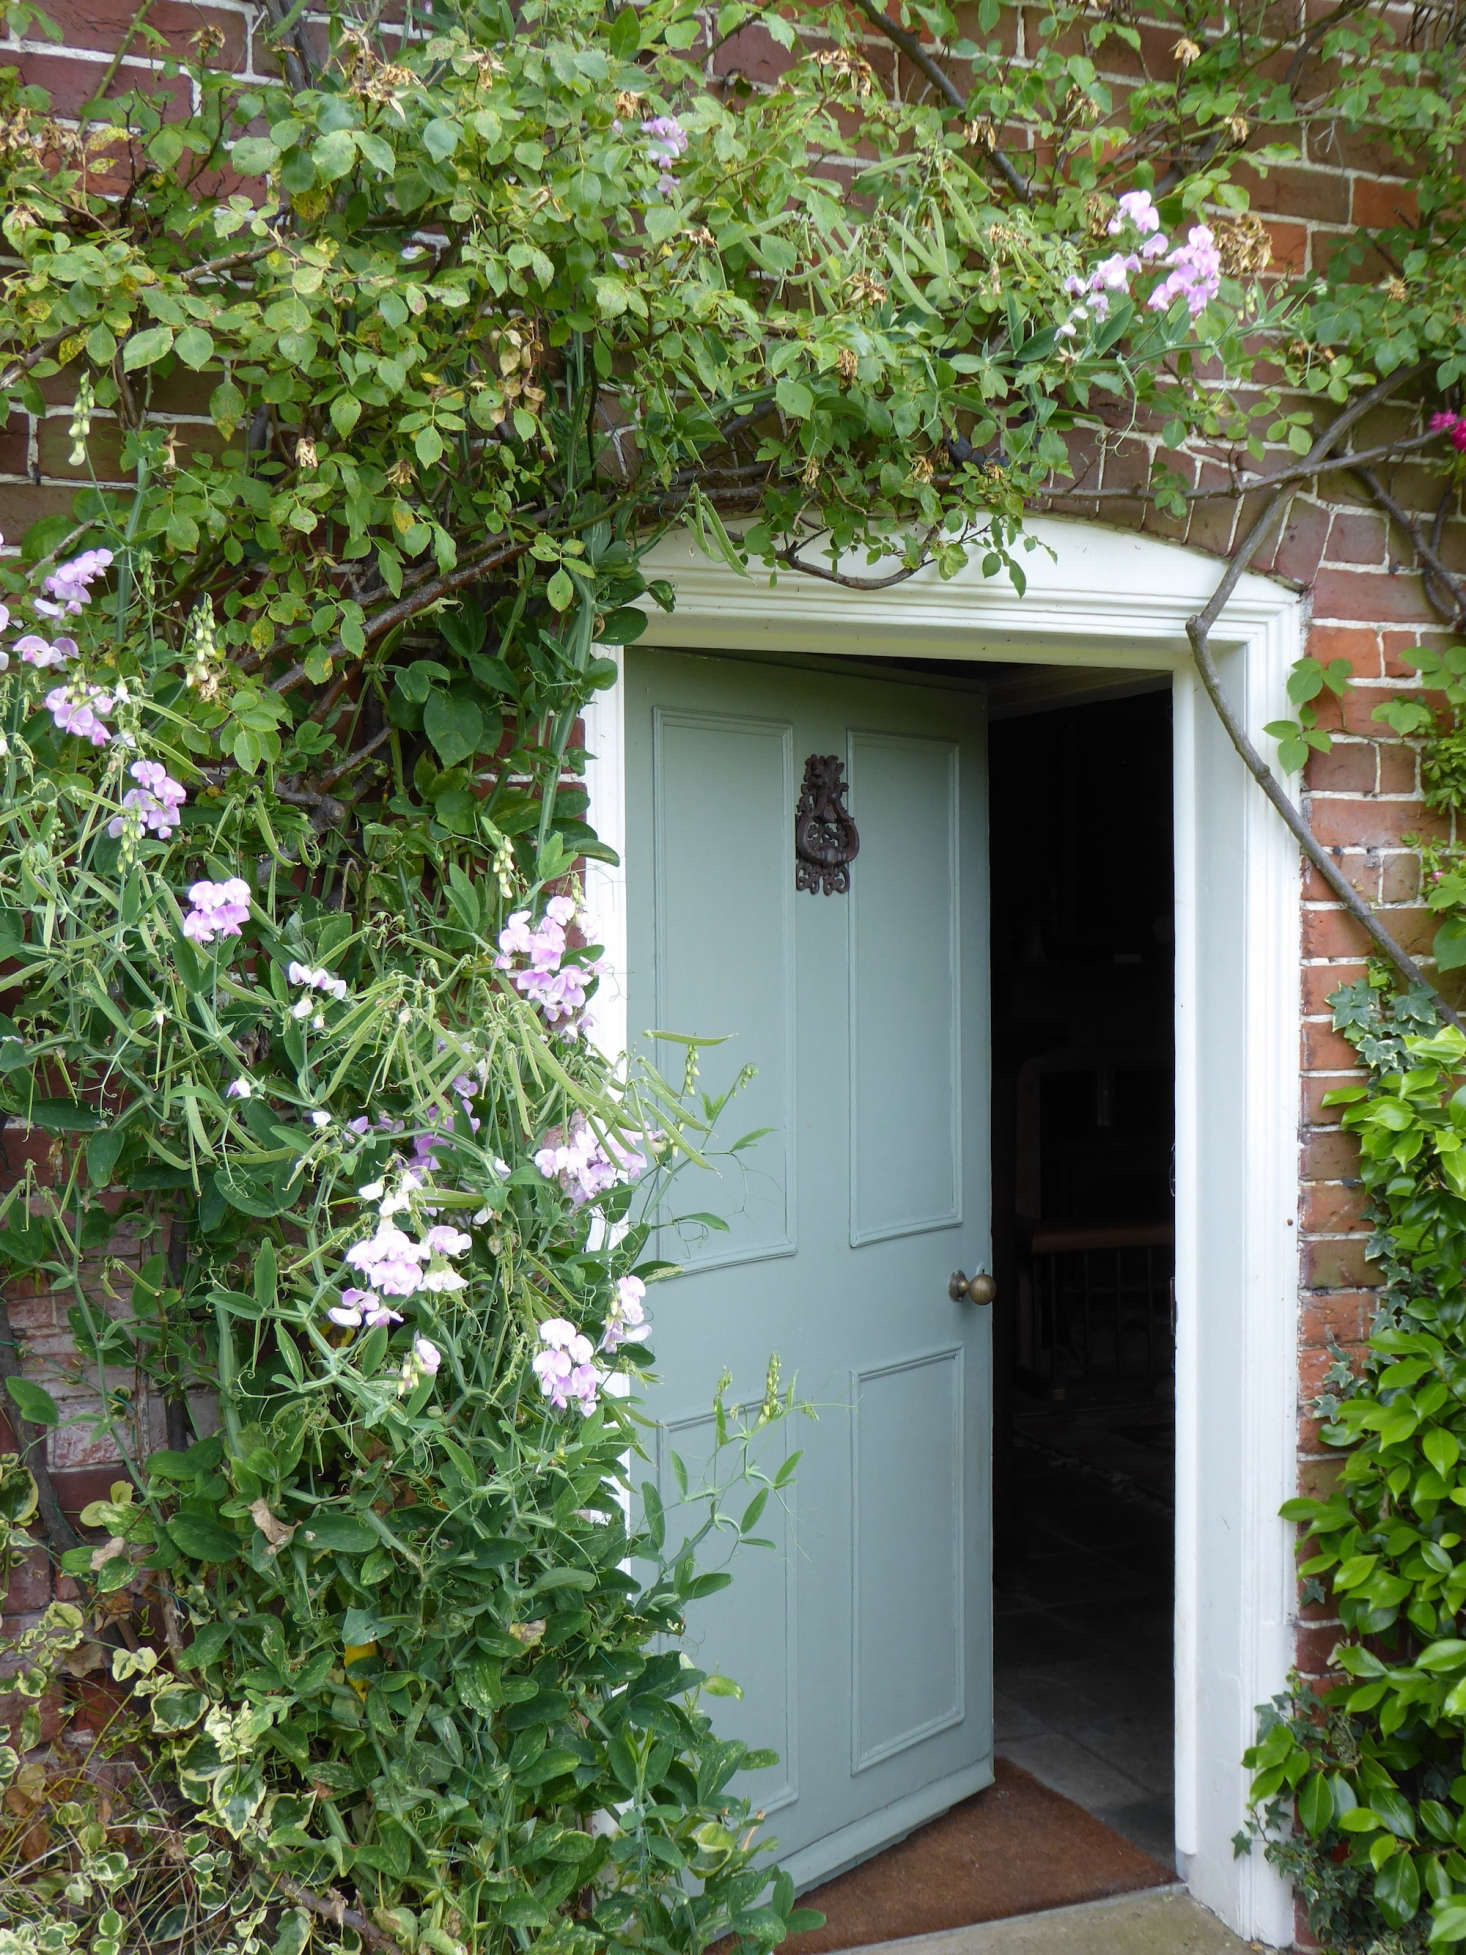 English Cottage Gardening 8 Lessons Learned In Rural